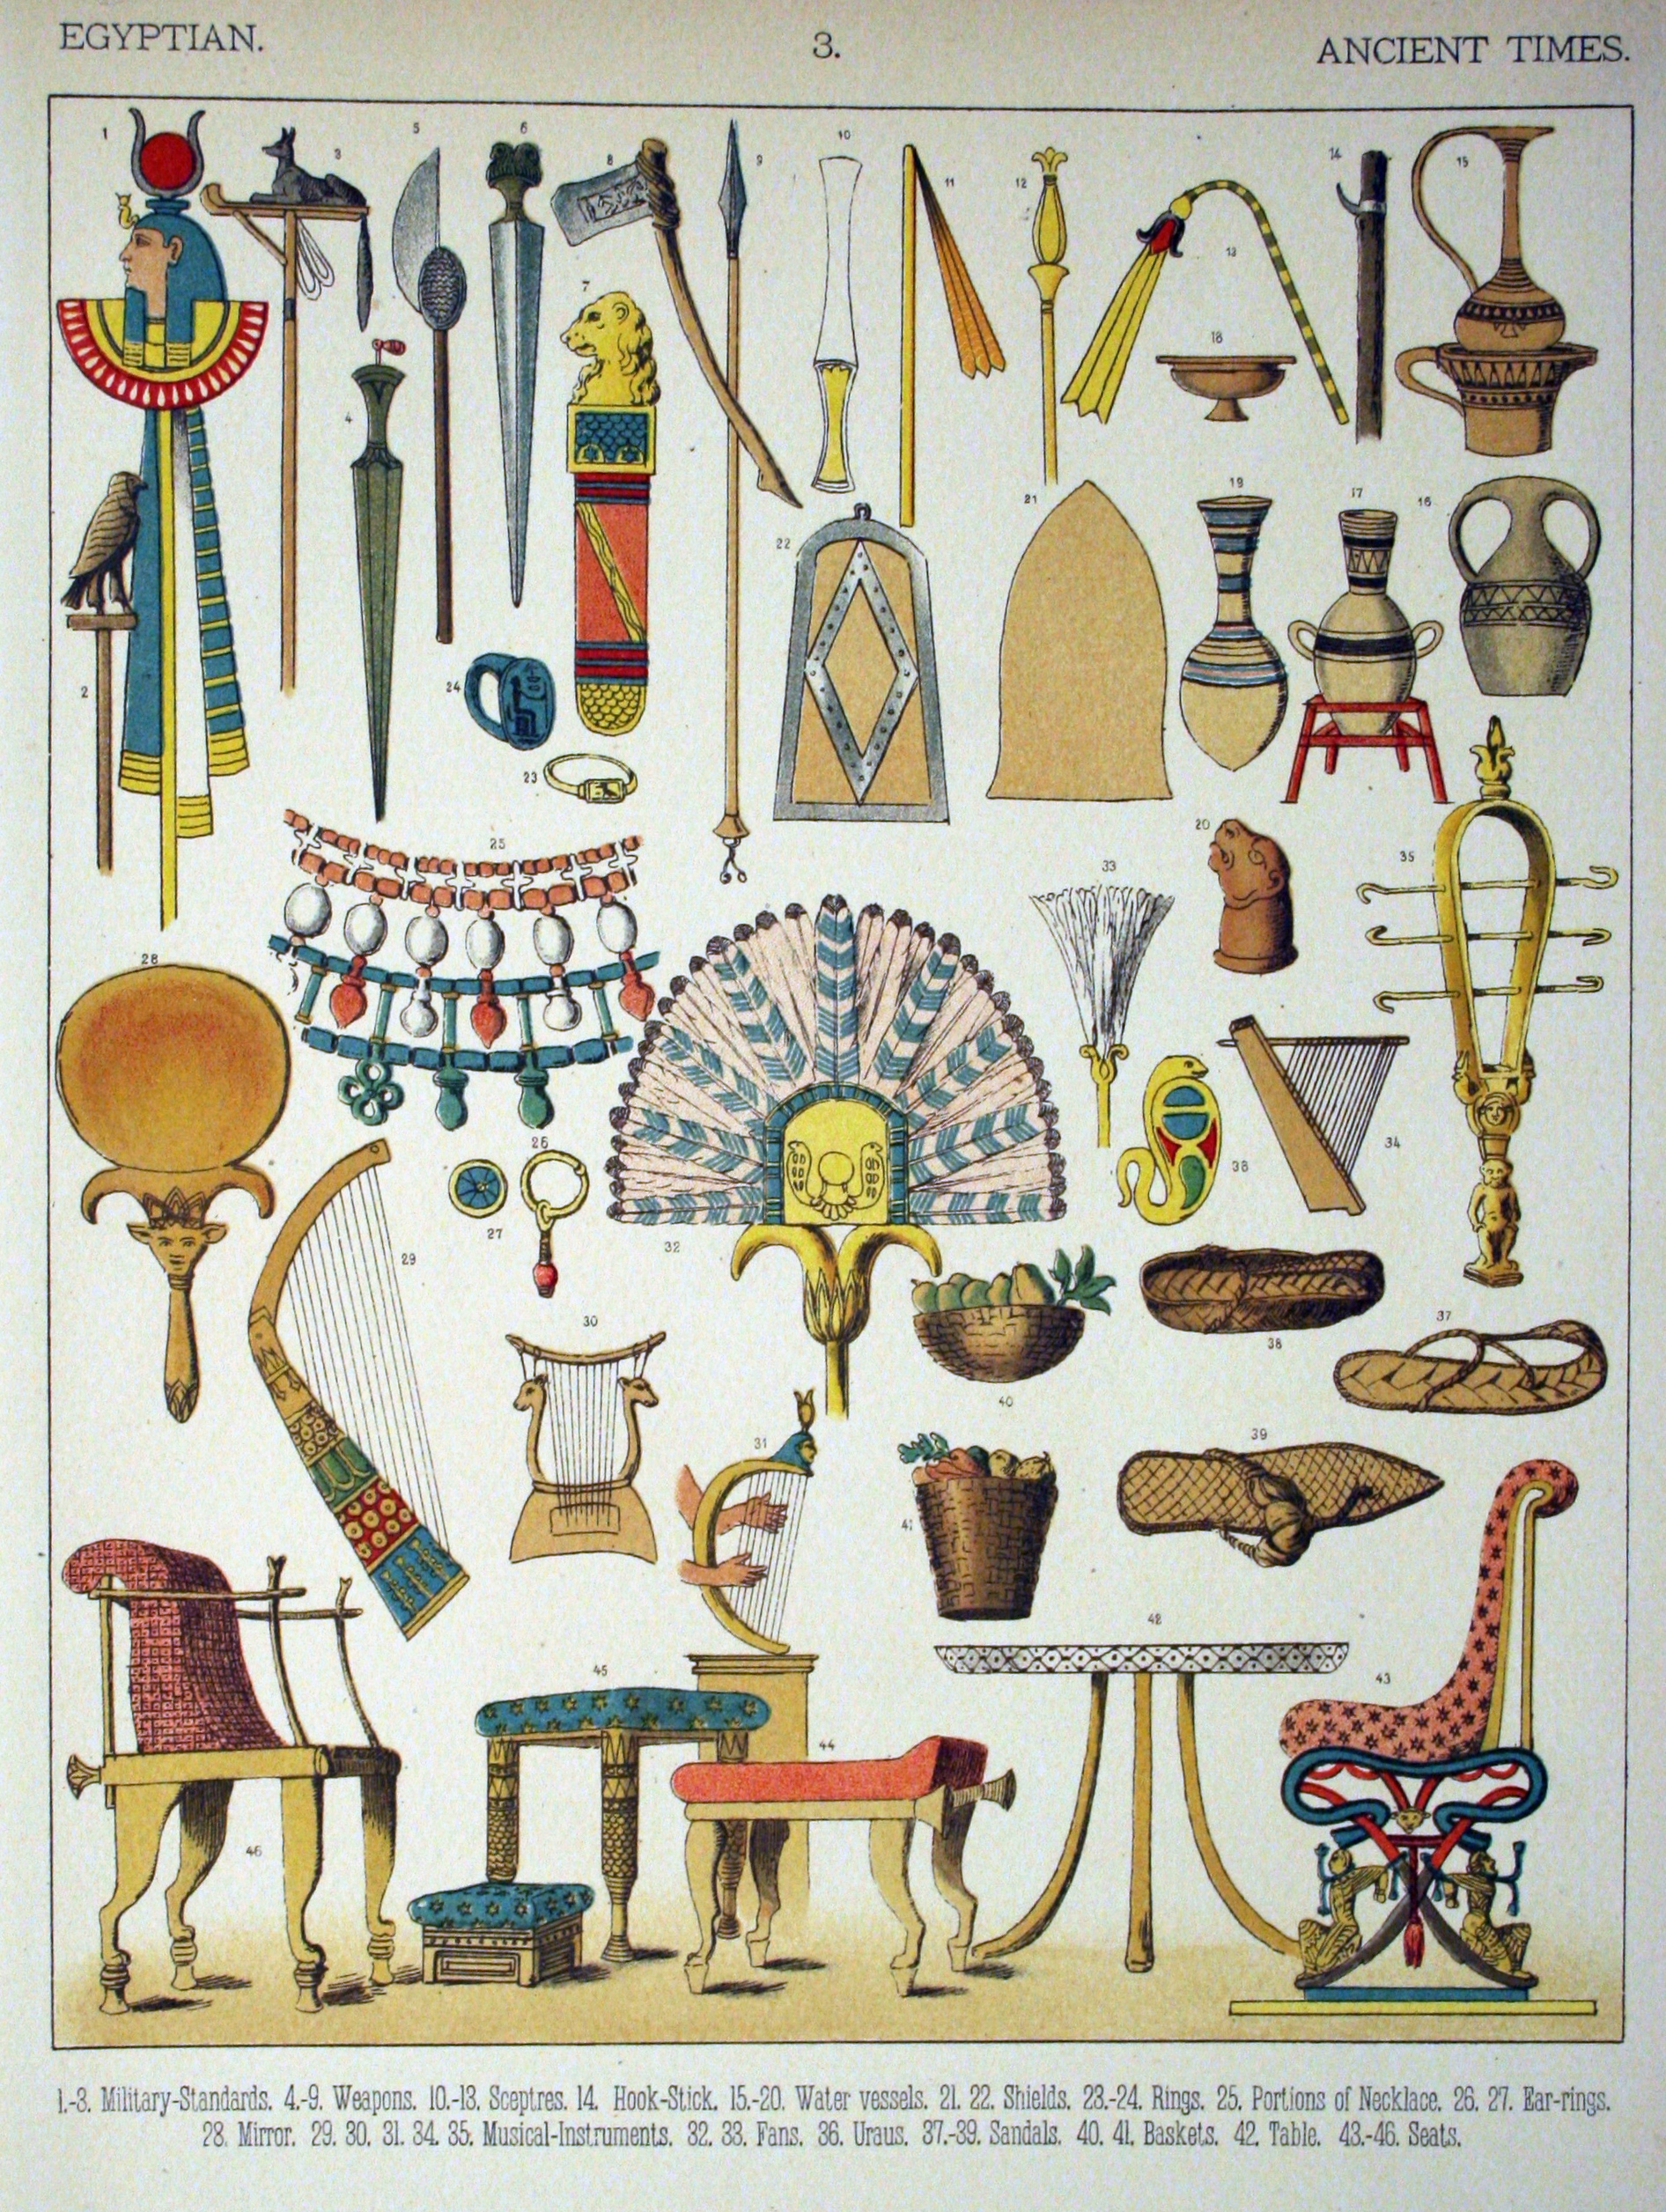 Ancient Egyptian Tools And Weapons File:ancient times, egyptian.